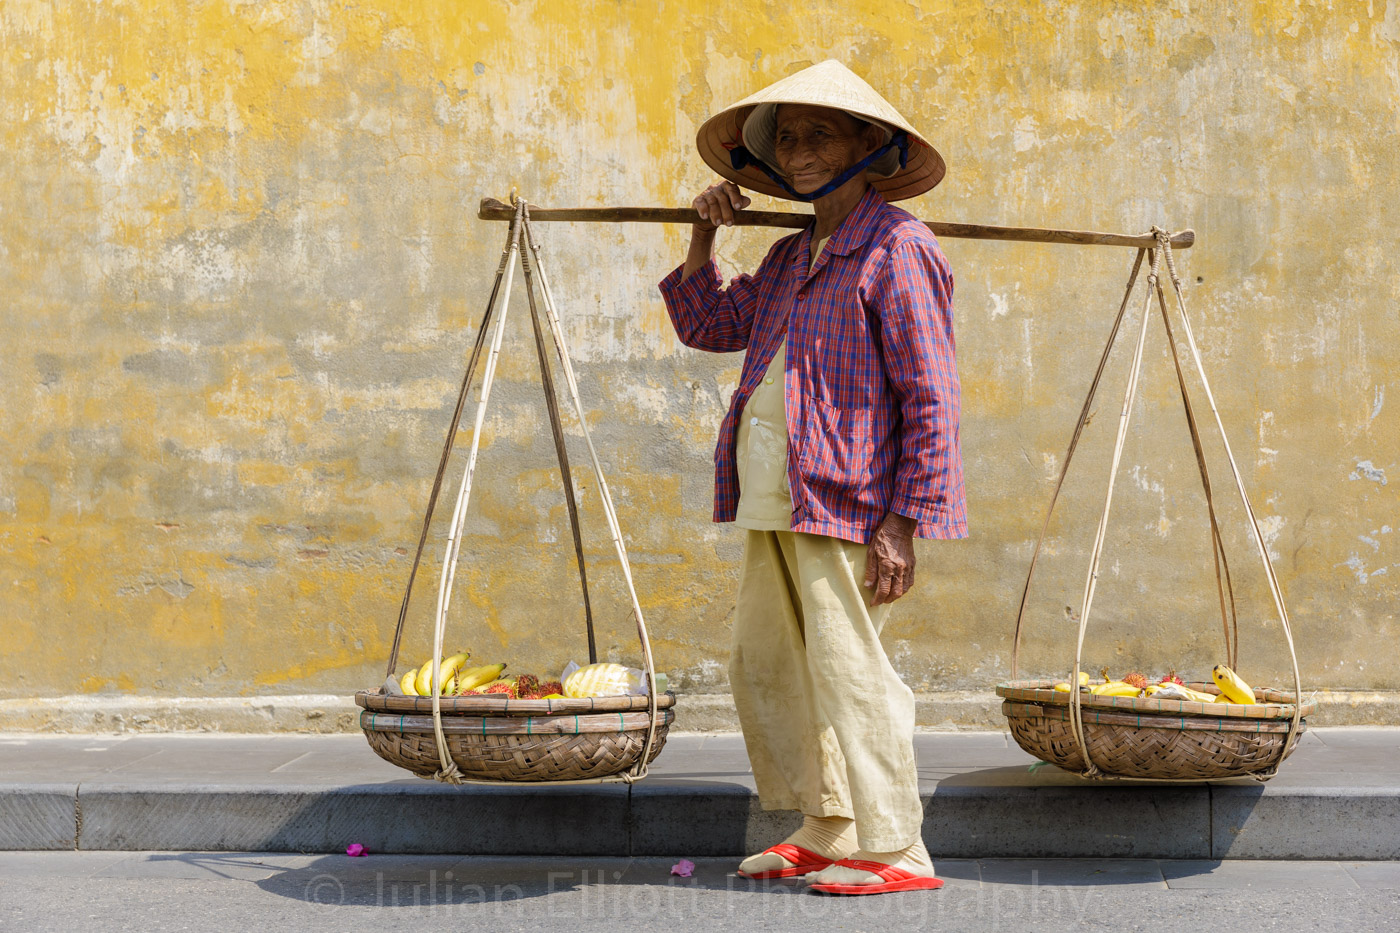 A street vendor in Hoi An, Vietnam.